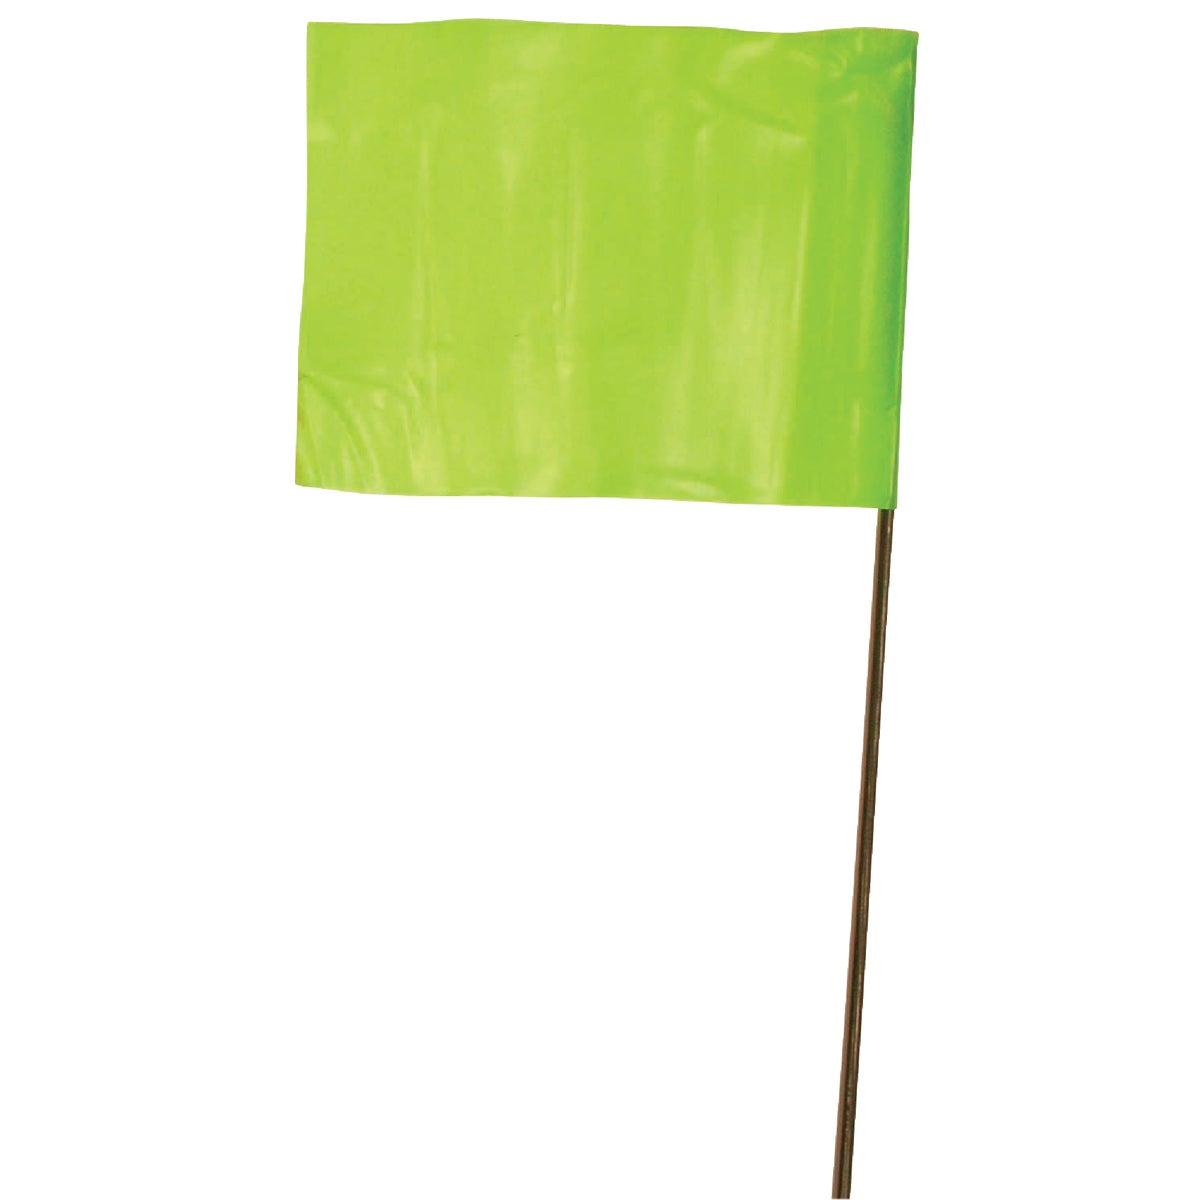 100PK LIME FLAGS - 64102 by Irwin Industr Tool